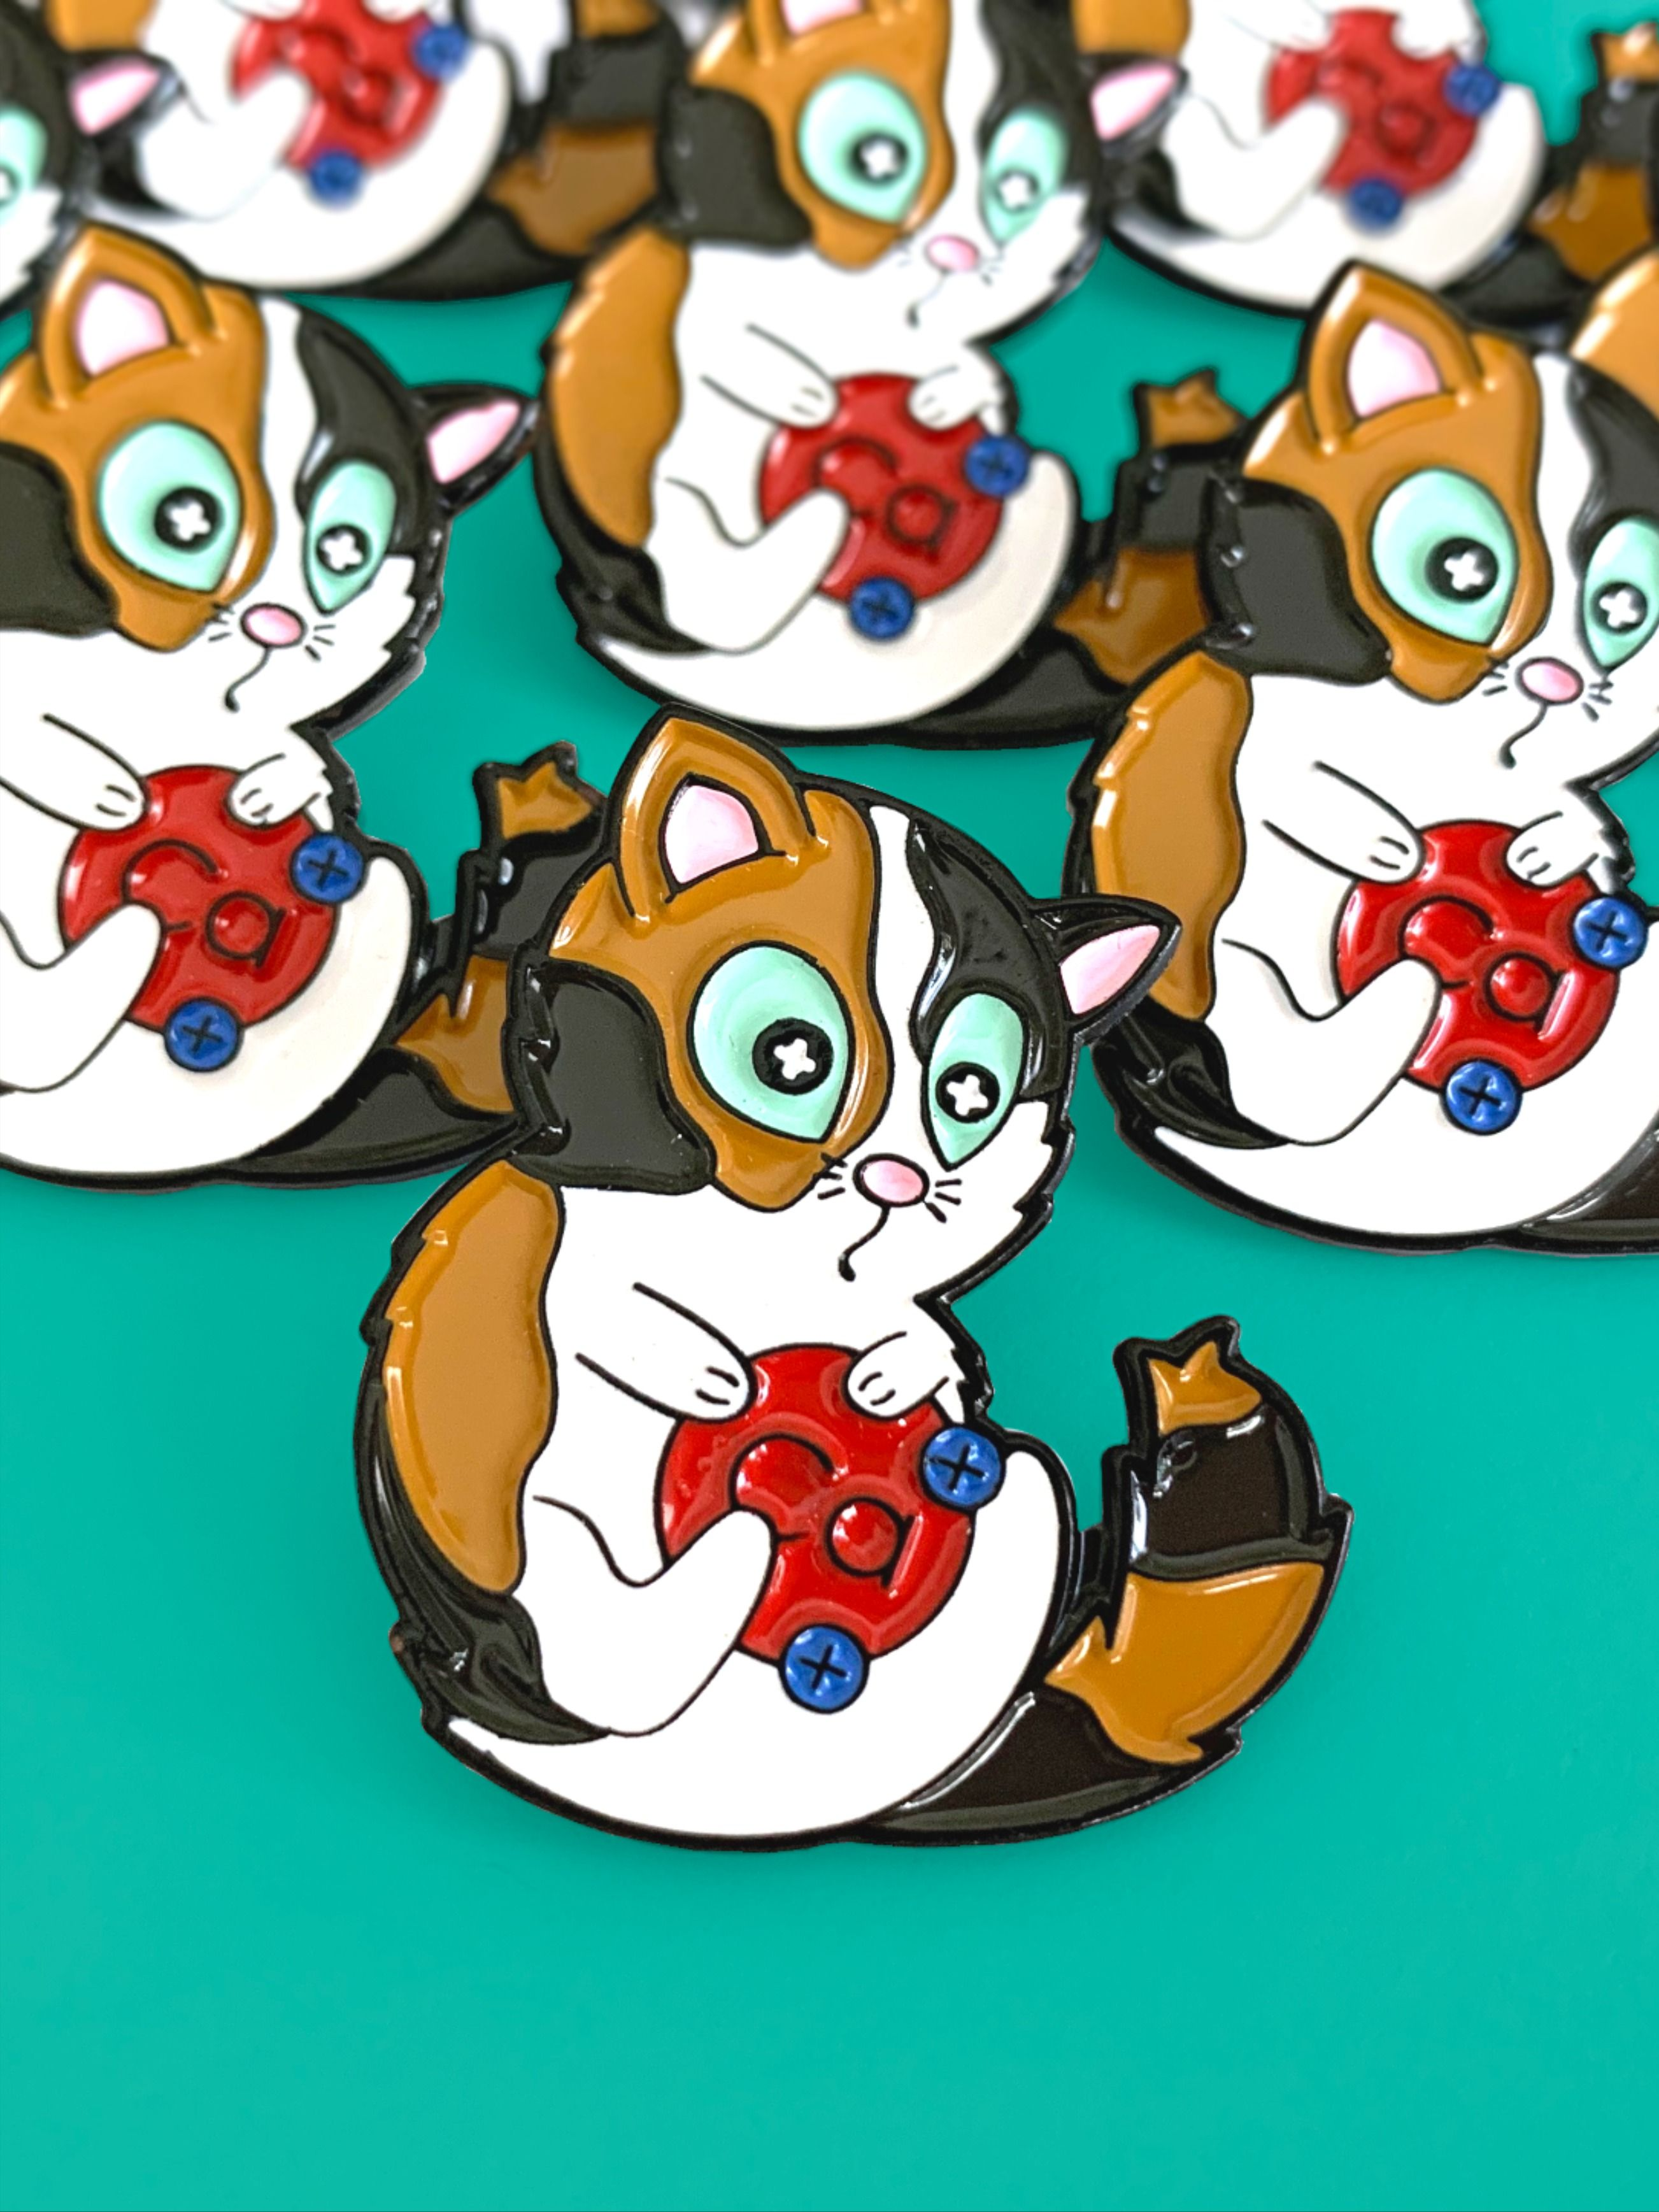 Pawsitive Calico Cation Pin In